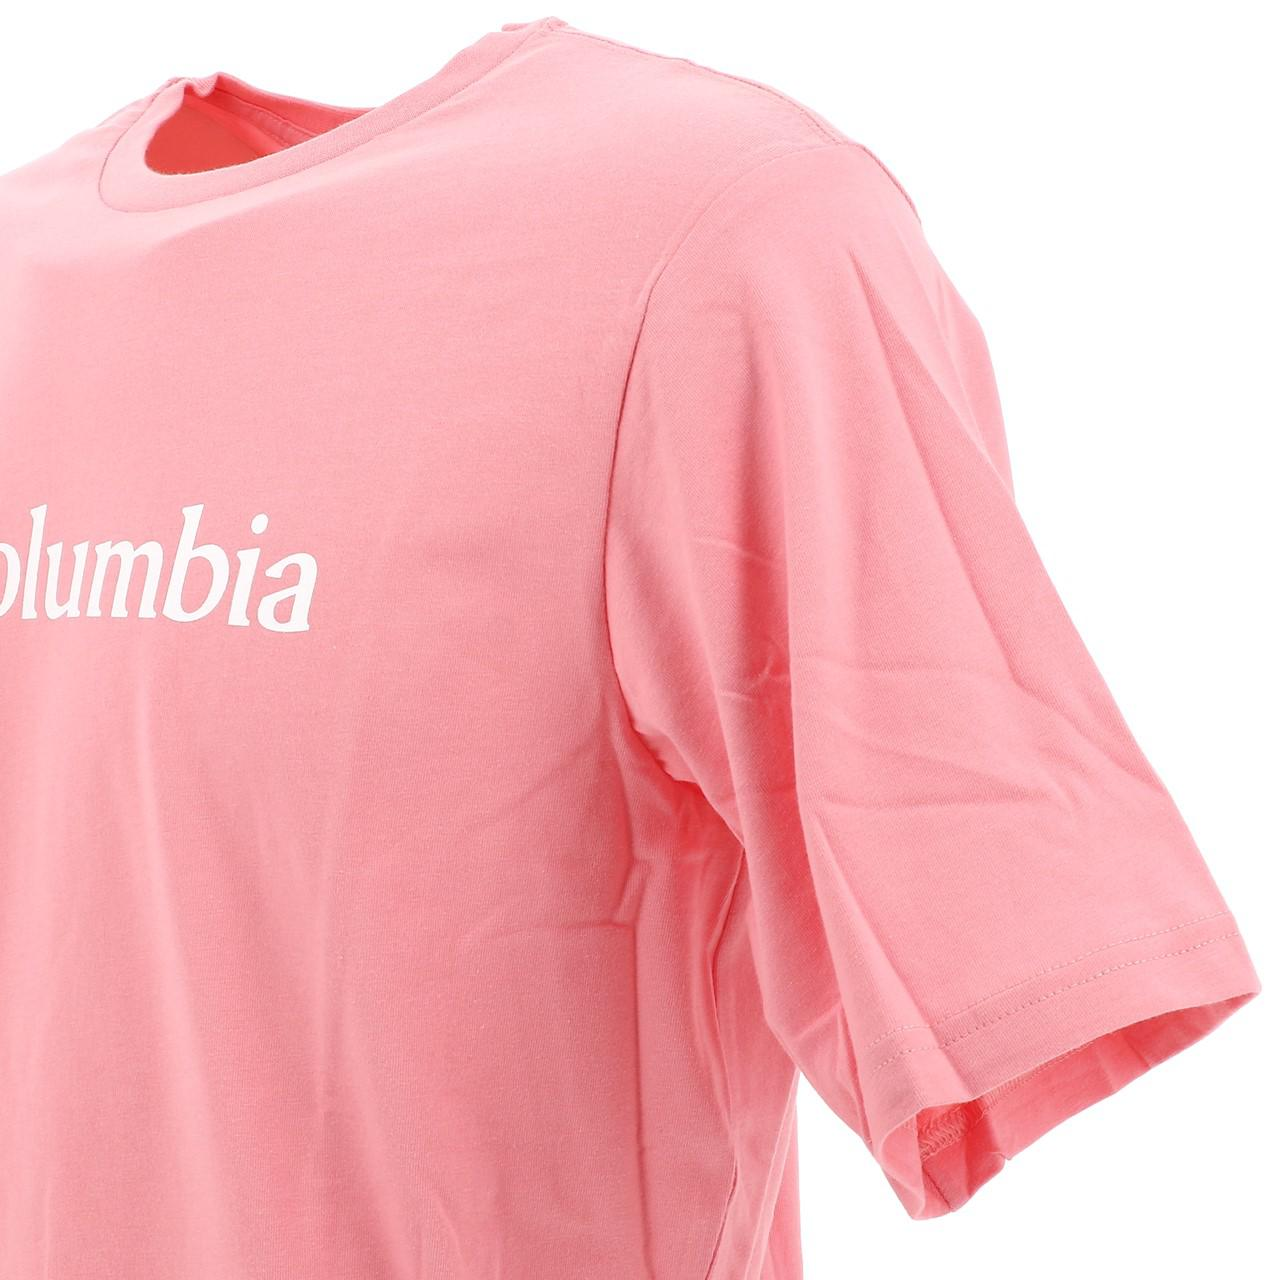 Short-Sleeve-T-Shirt-Columbia-Csc-Basic-Logo-Rse-Mc-Tee-Pink-18106-New thumbnail 3